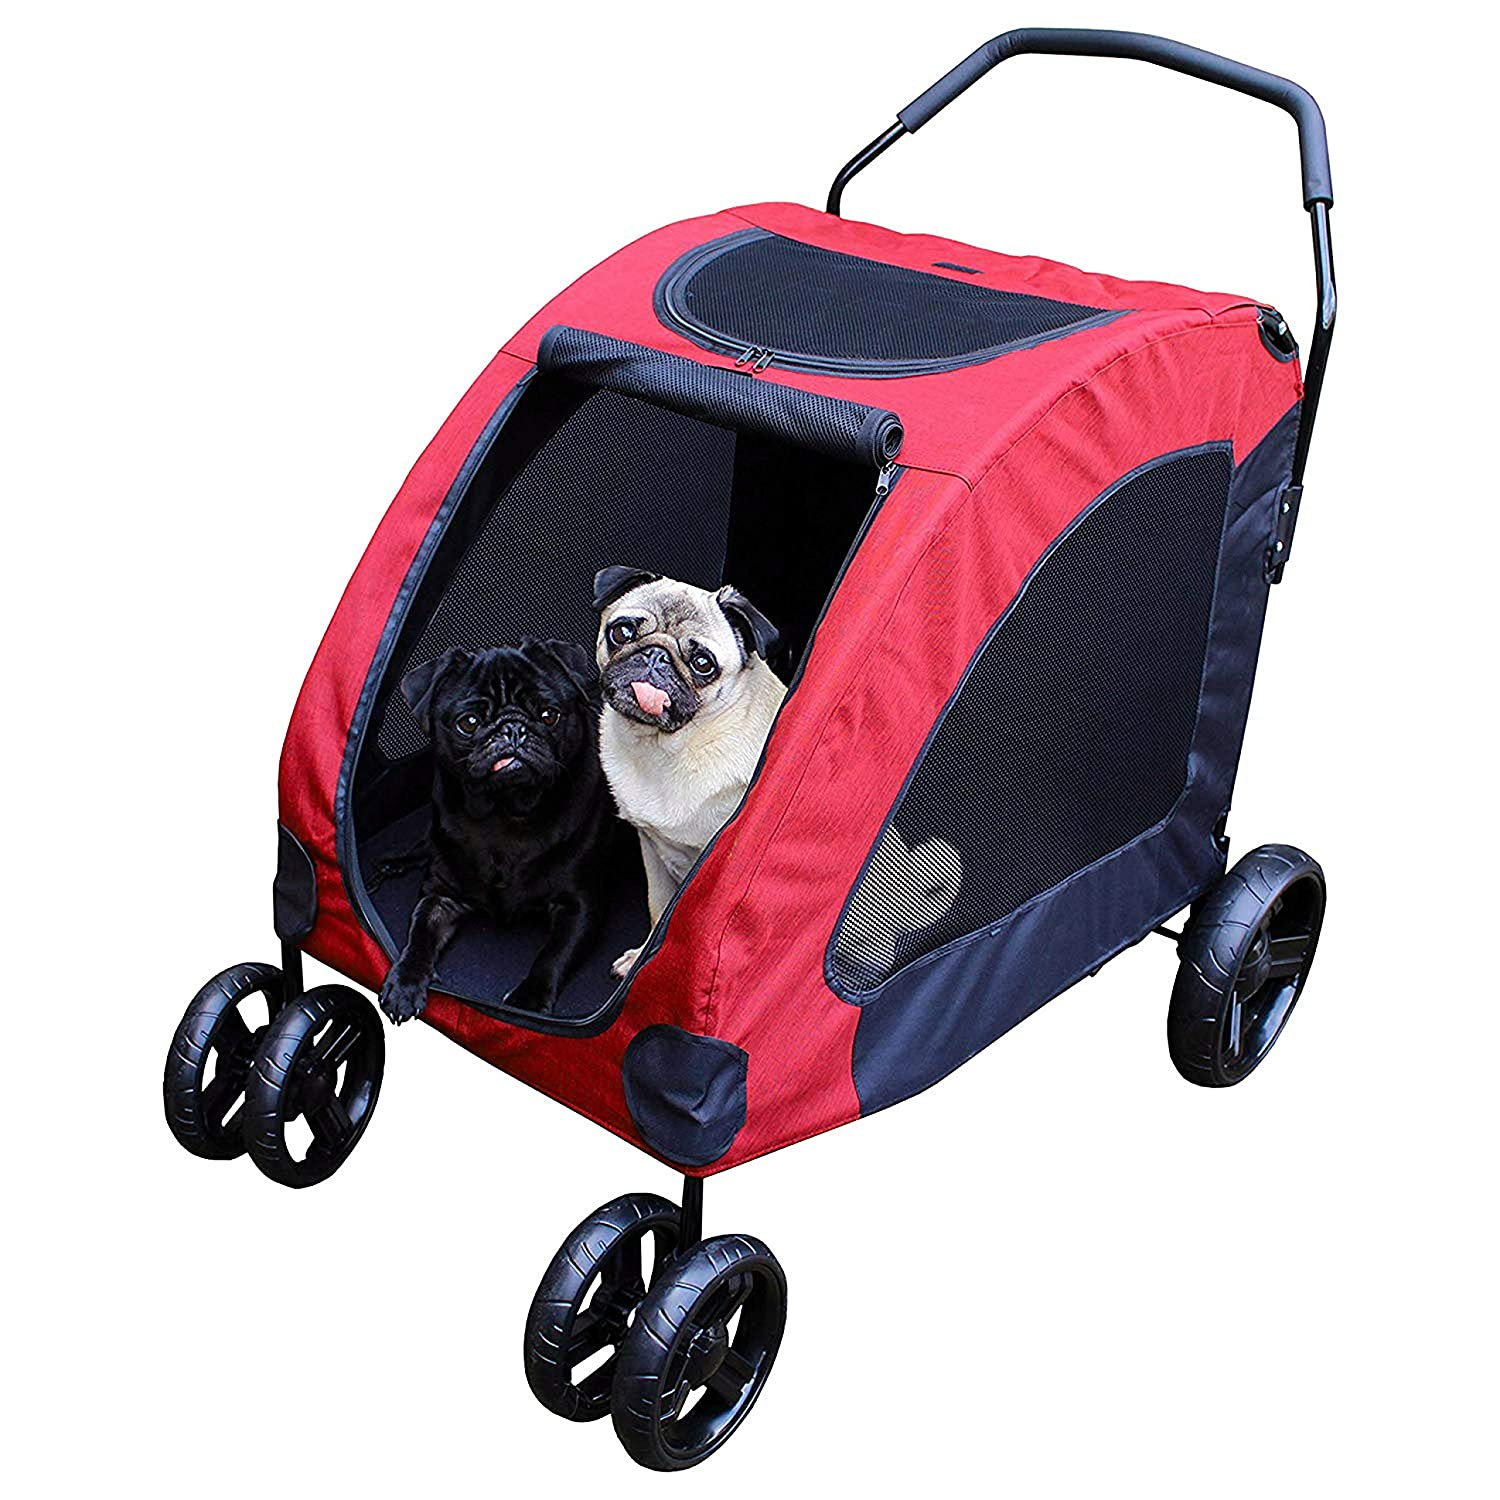 Pet Stroller 4 Wheeled, Large 360 Degree redatable Dog Cat Pram 106cm (41.73 )H, 104cm (40.94 )D and 65cm (25.59 )W in Red Holds 15-45 kg of Weight with Safety Breaks, Netted Windows and Pockets